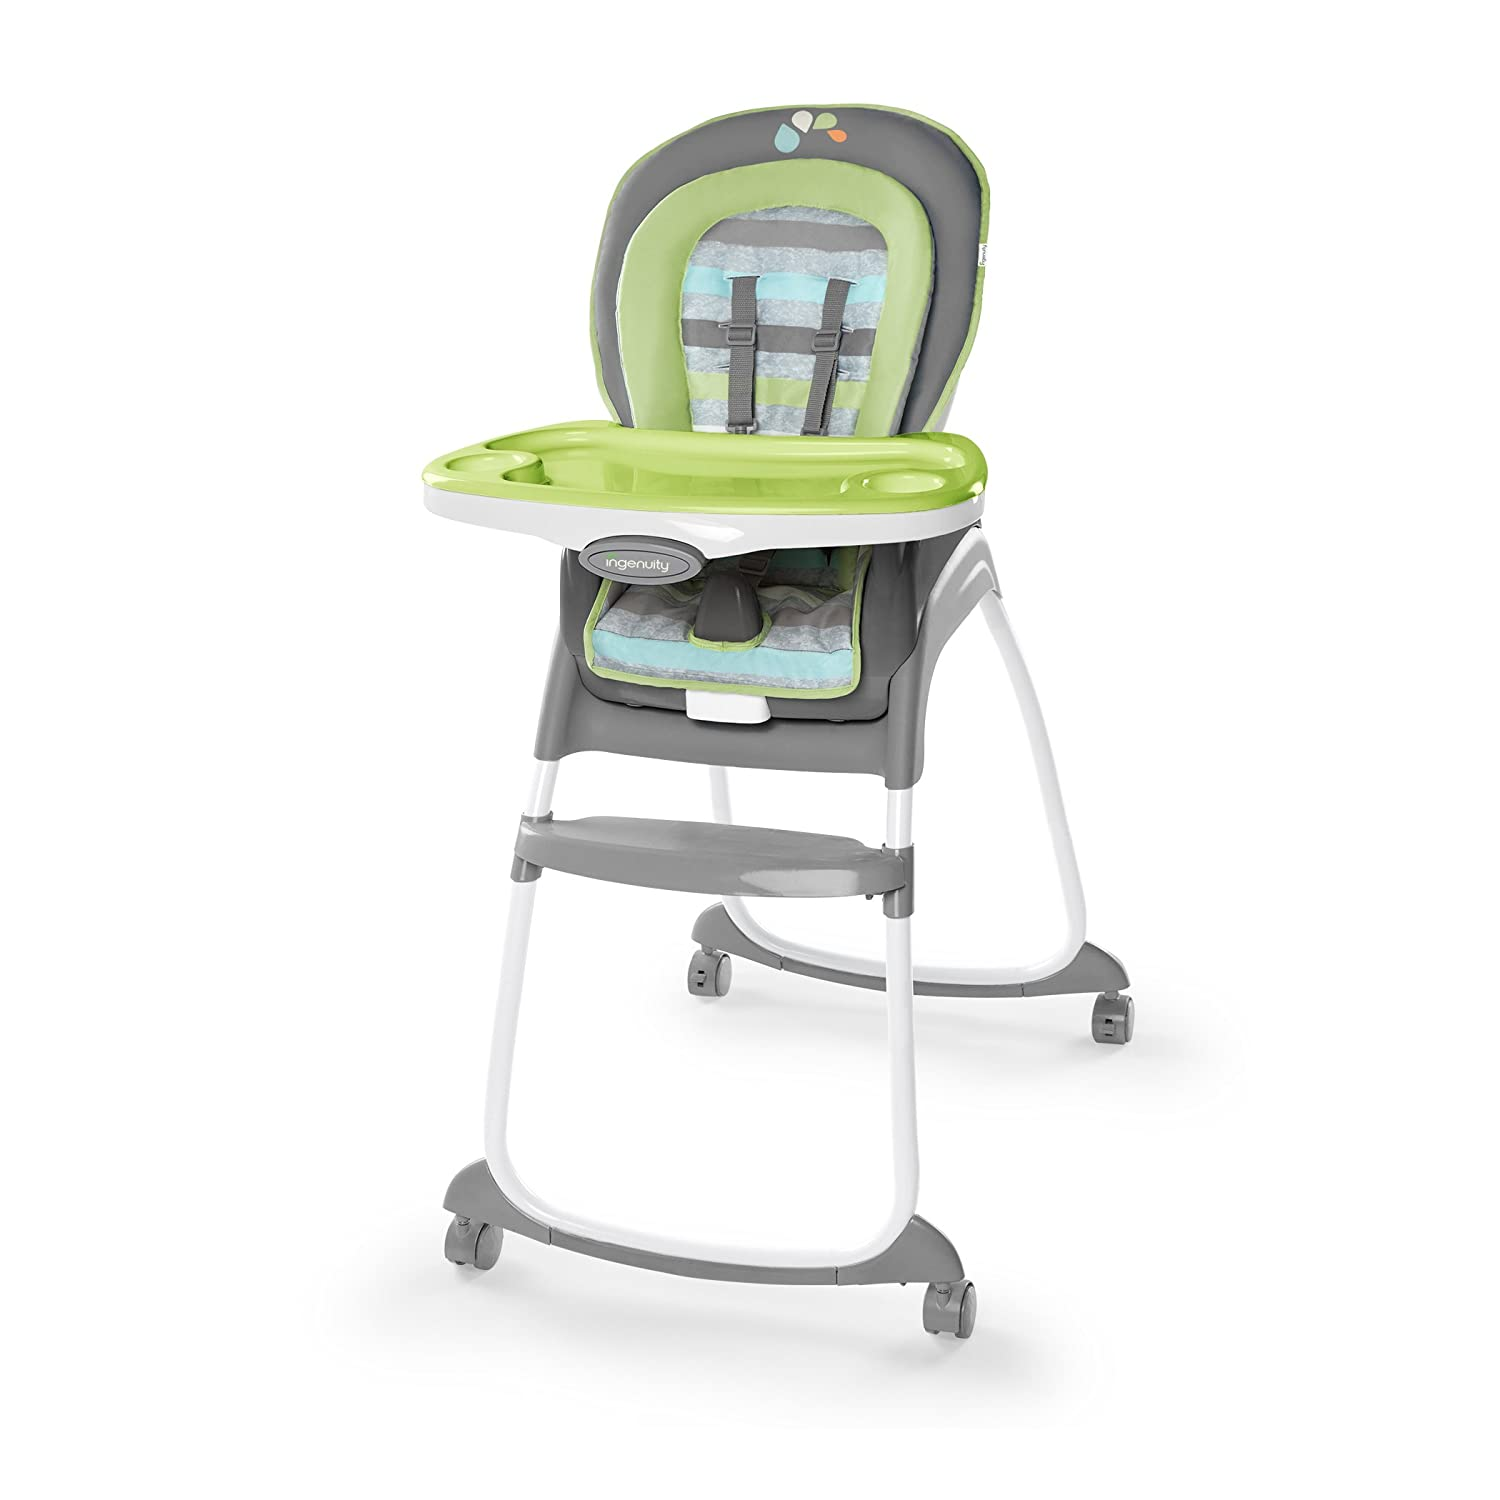 Ingenuity Trio 3-in-1 Deluxe High Chair-Sahara Burst Kids II 60314